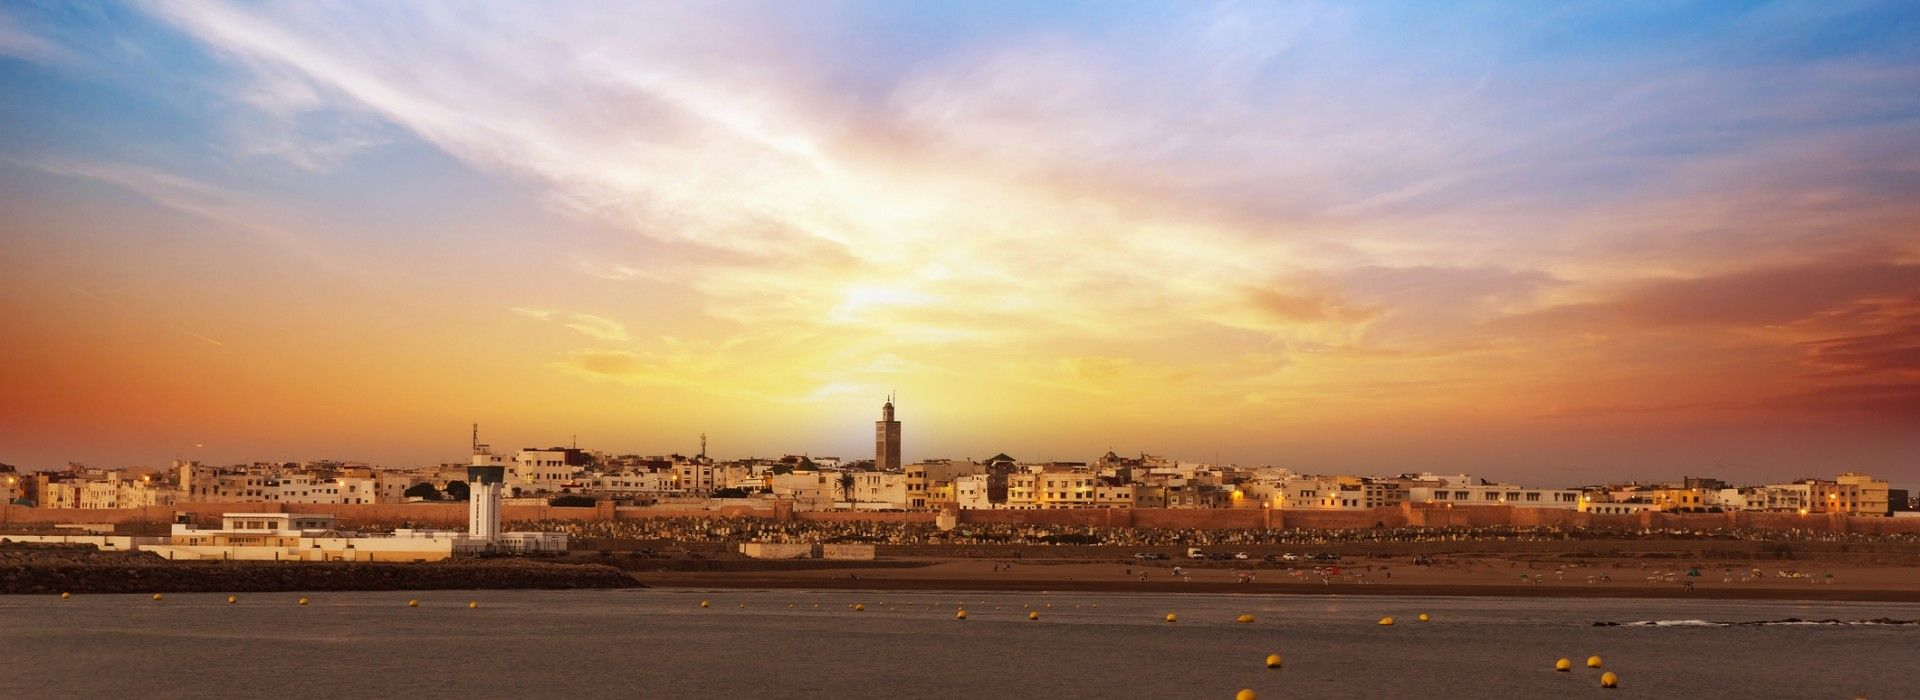 Sightseeing, attractions, culture and history Tours in Morocco